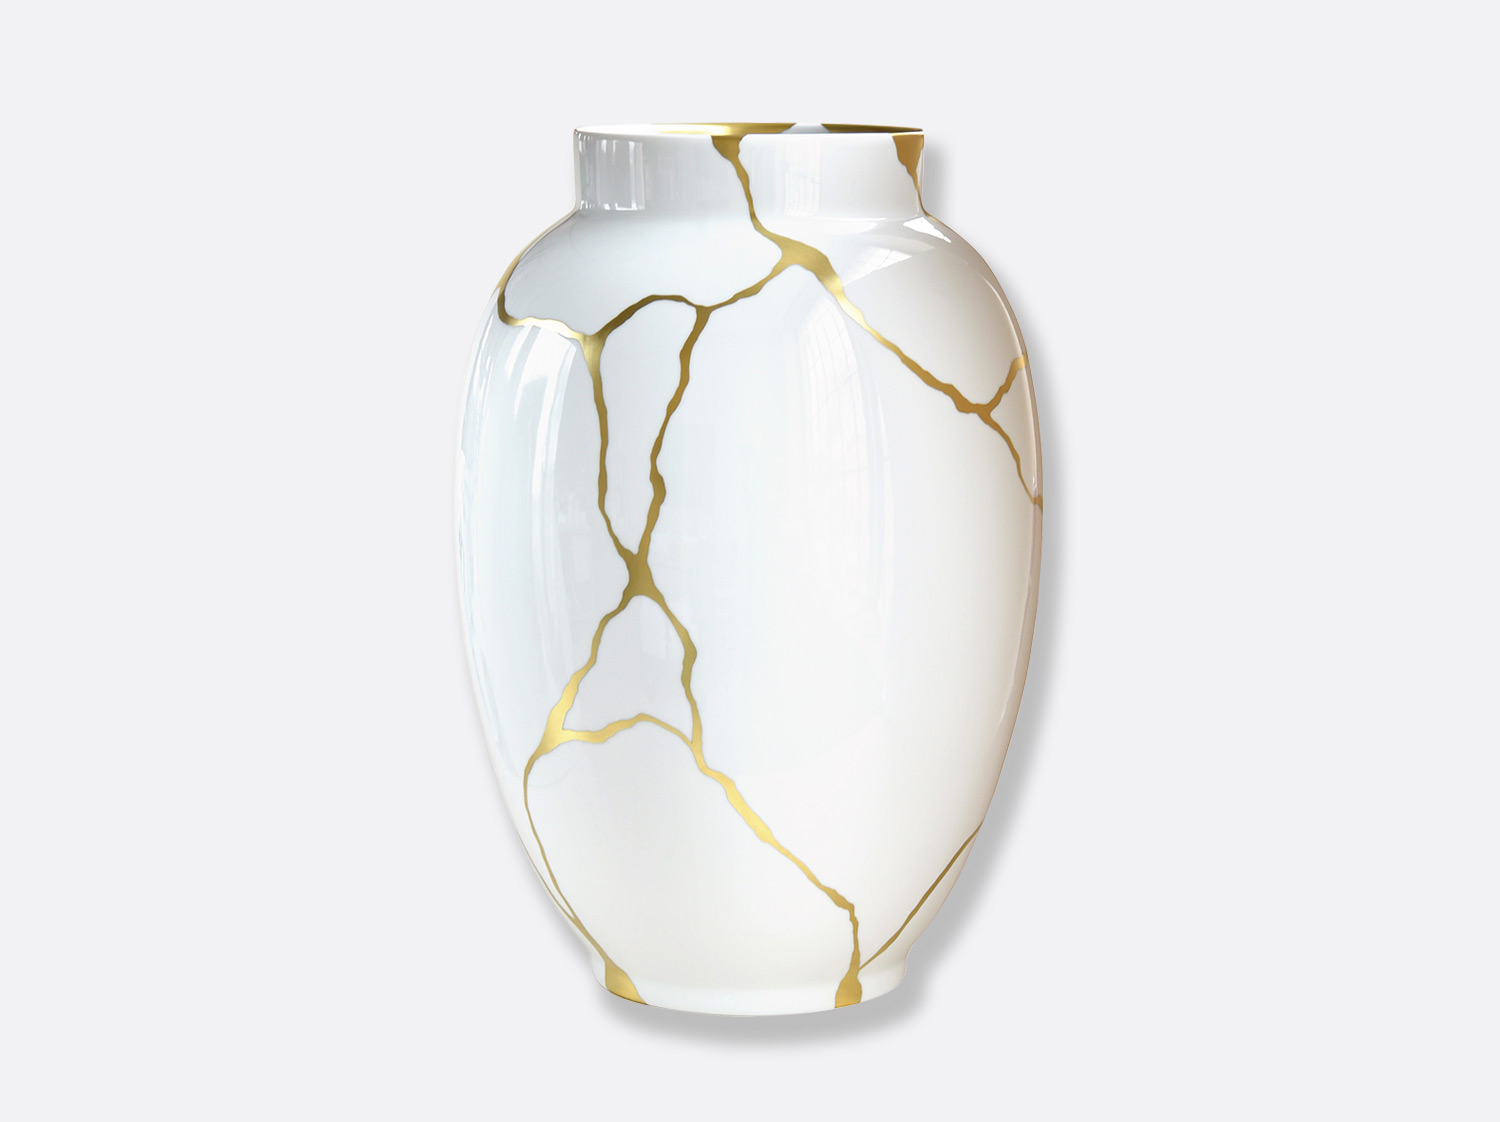 Potiche blanche H. 57 cm en porcelaine de la collection KINTSUGI Bernardaud